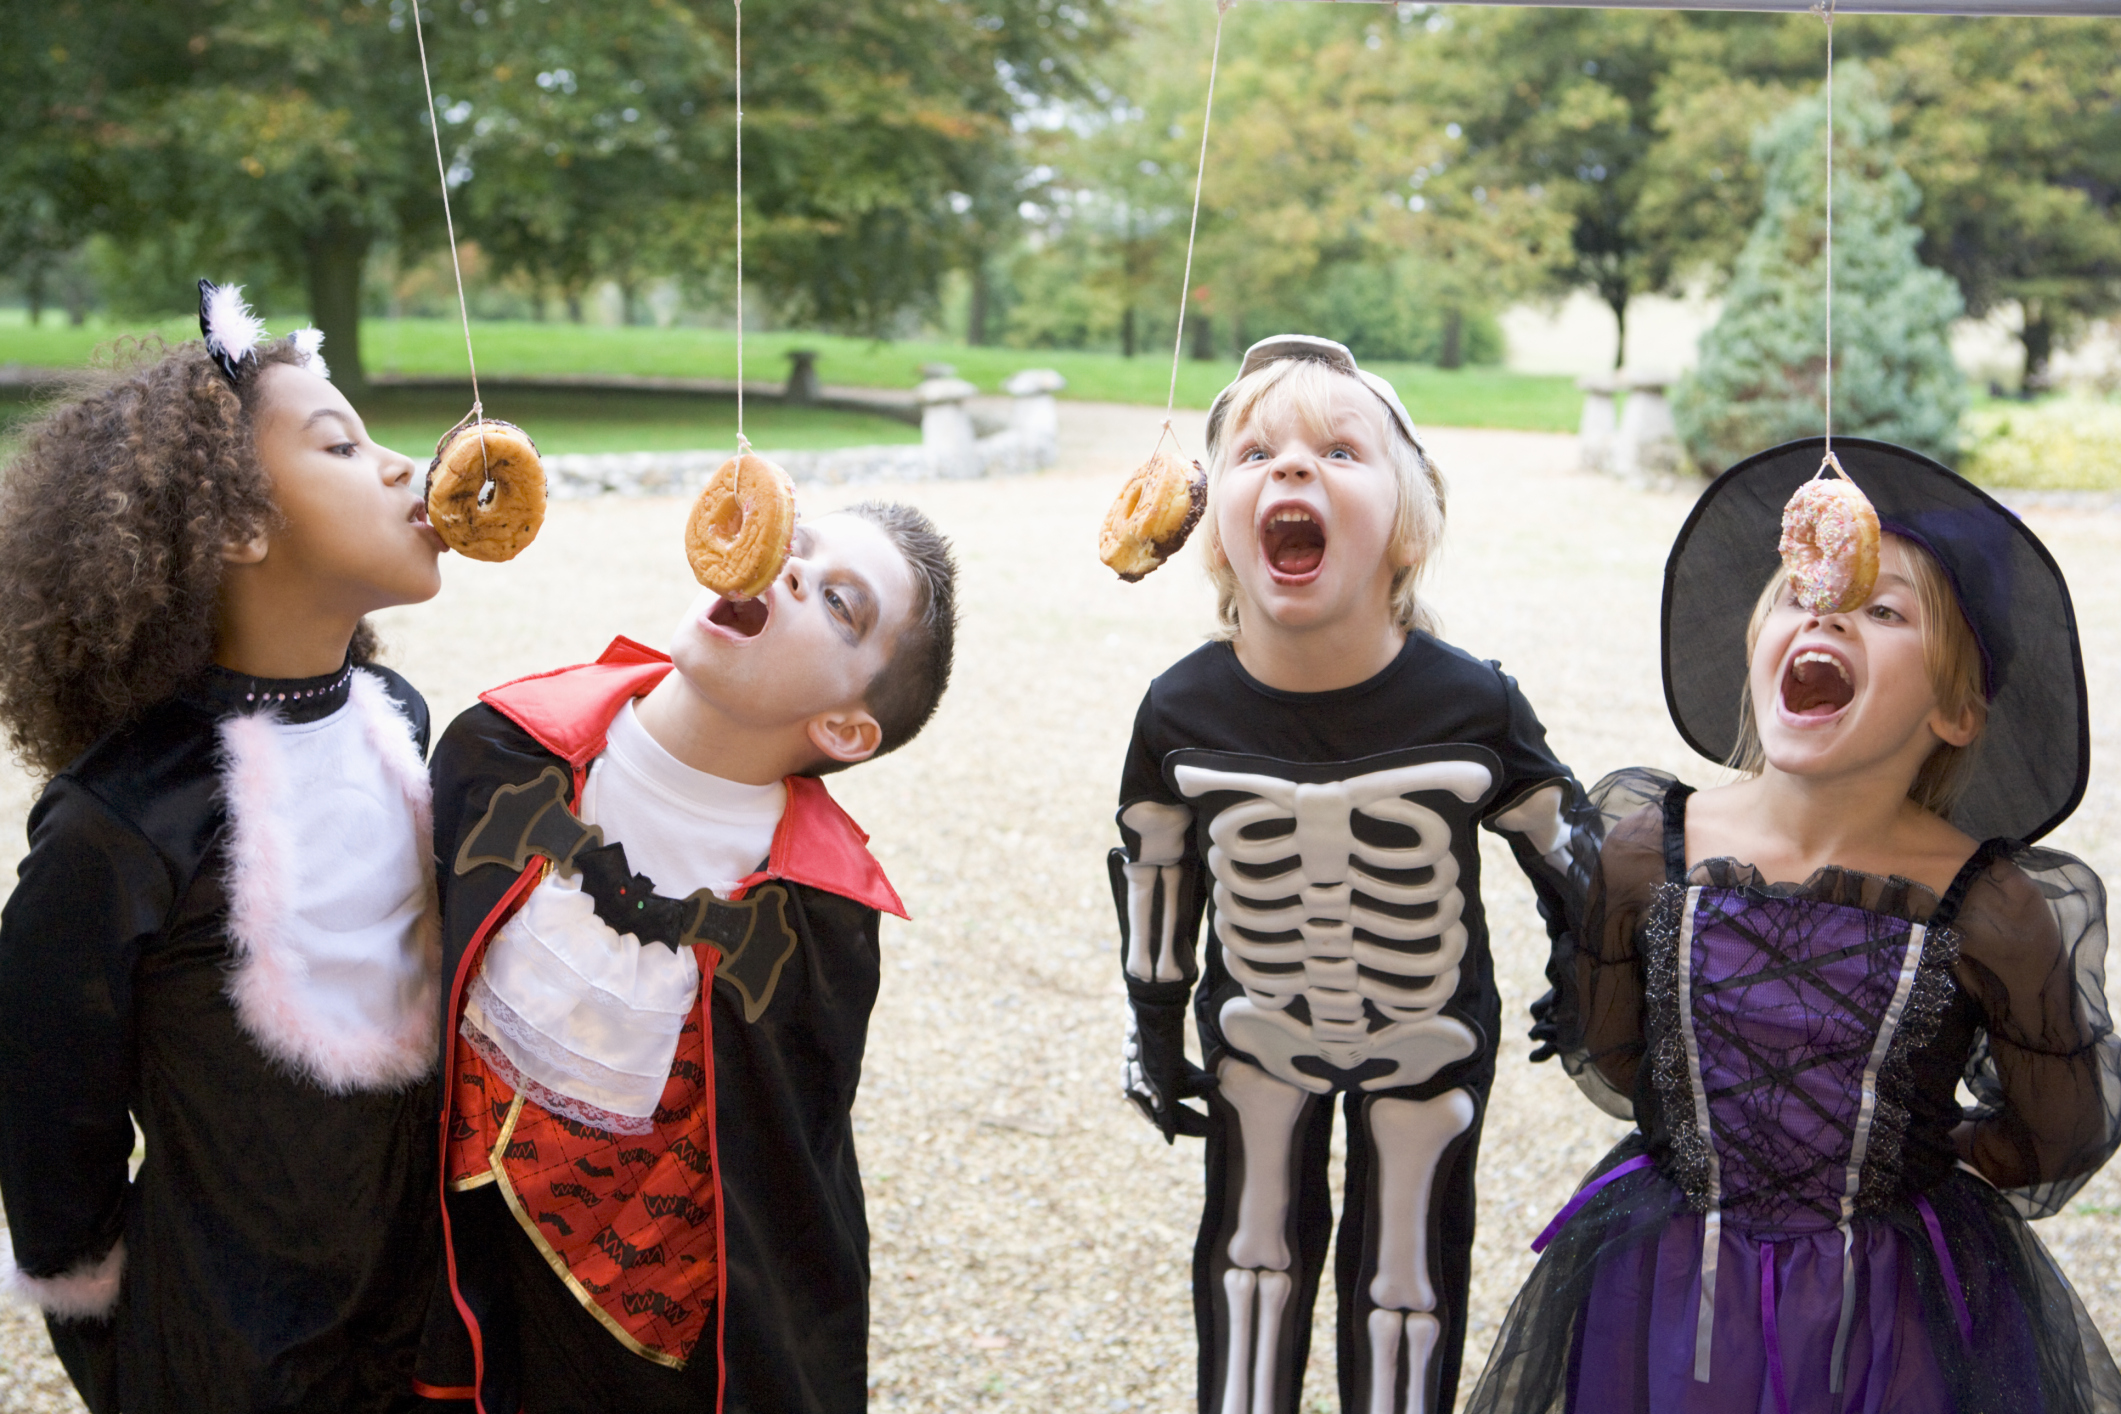 Four young friends on Halloween in costumes eating donuts hanging off strings.